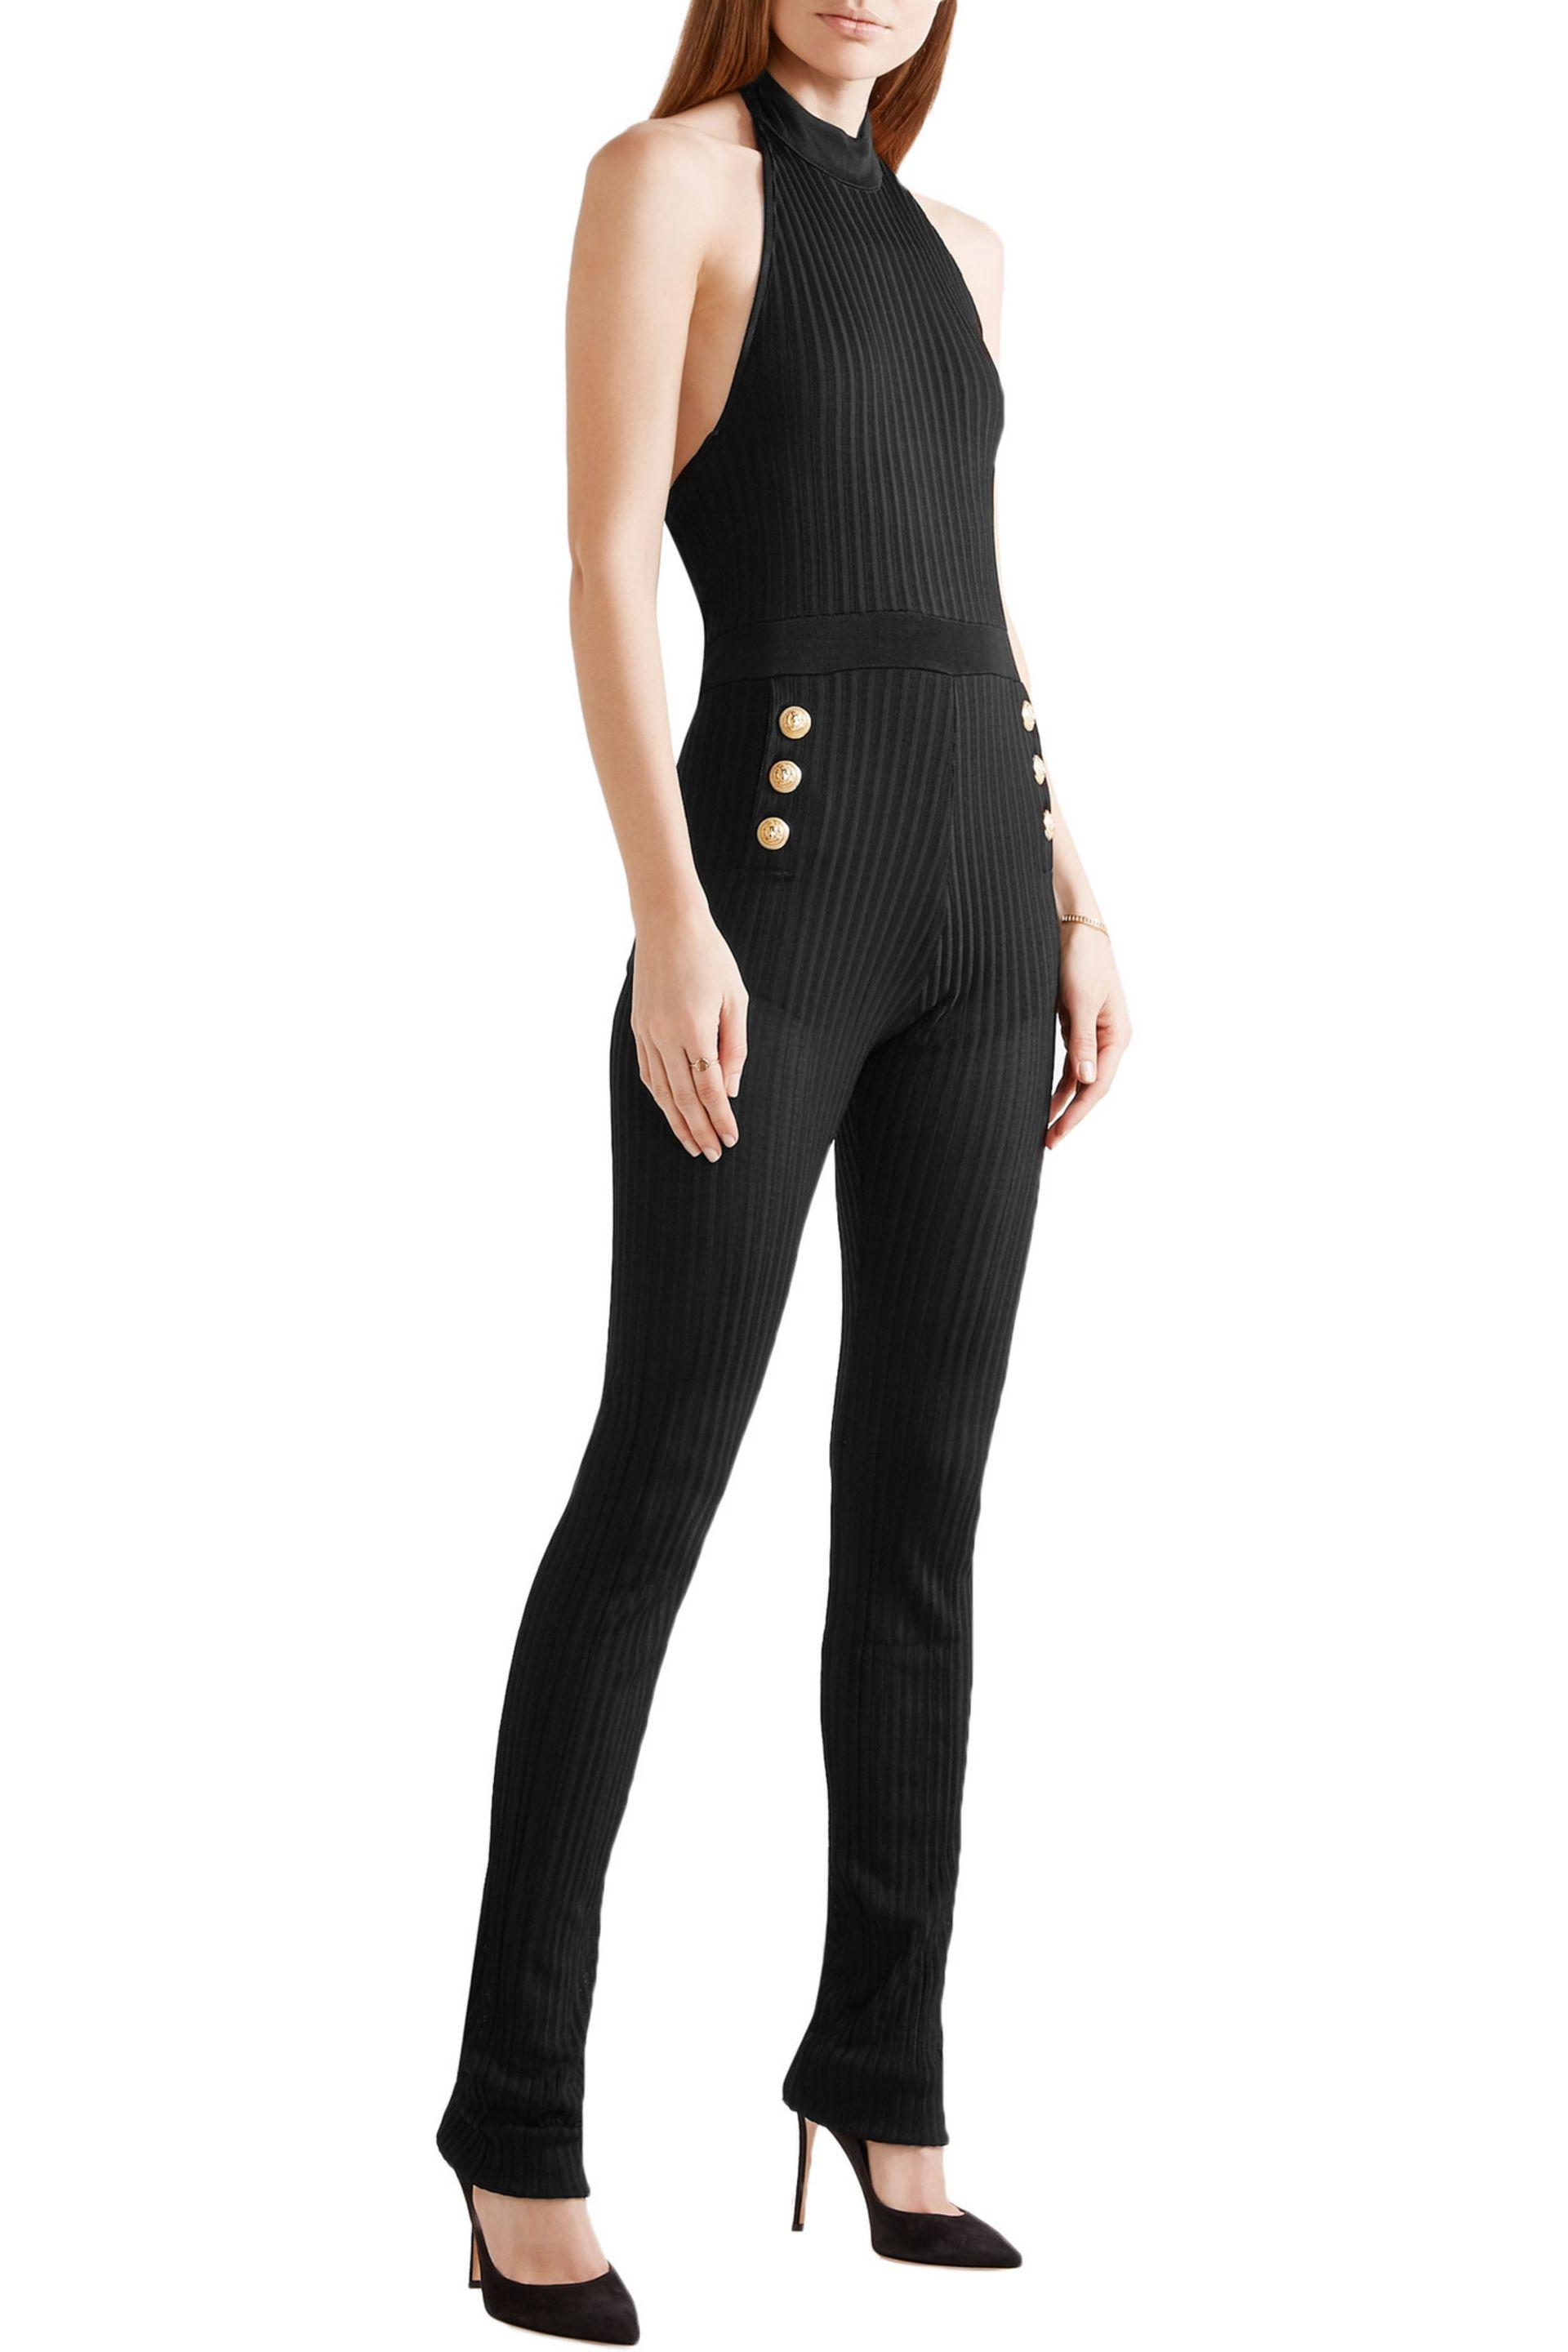 27d0731ad3a Lyst - Balmain Ribbed Stretch-knit Halterneck Jumpsuit in Black